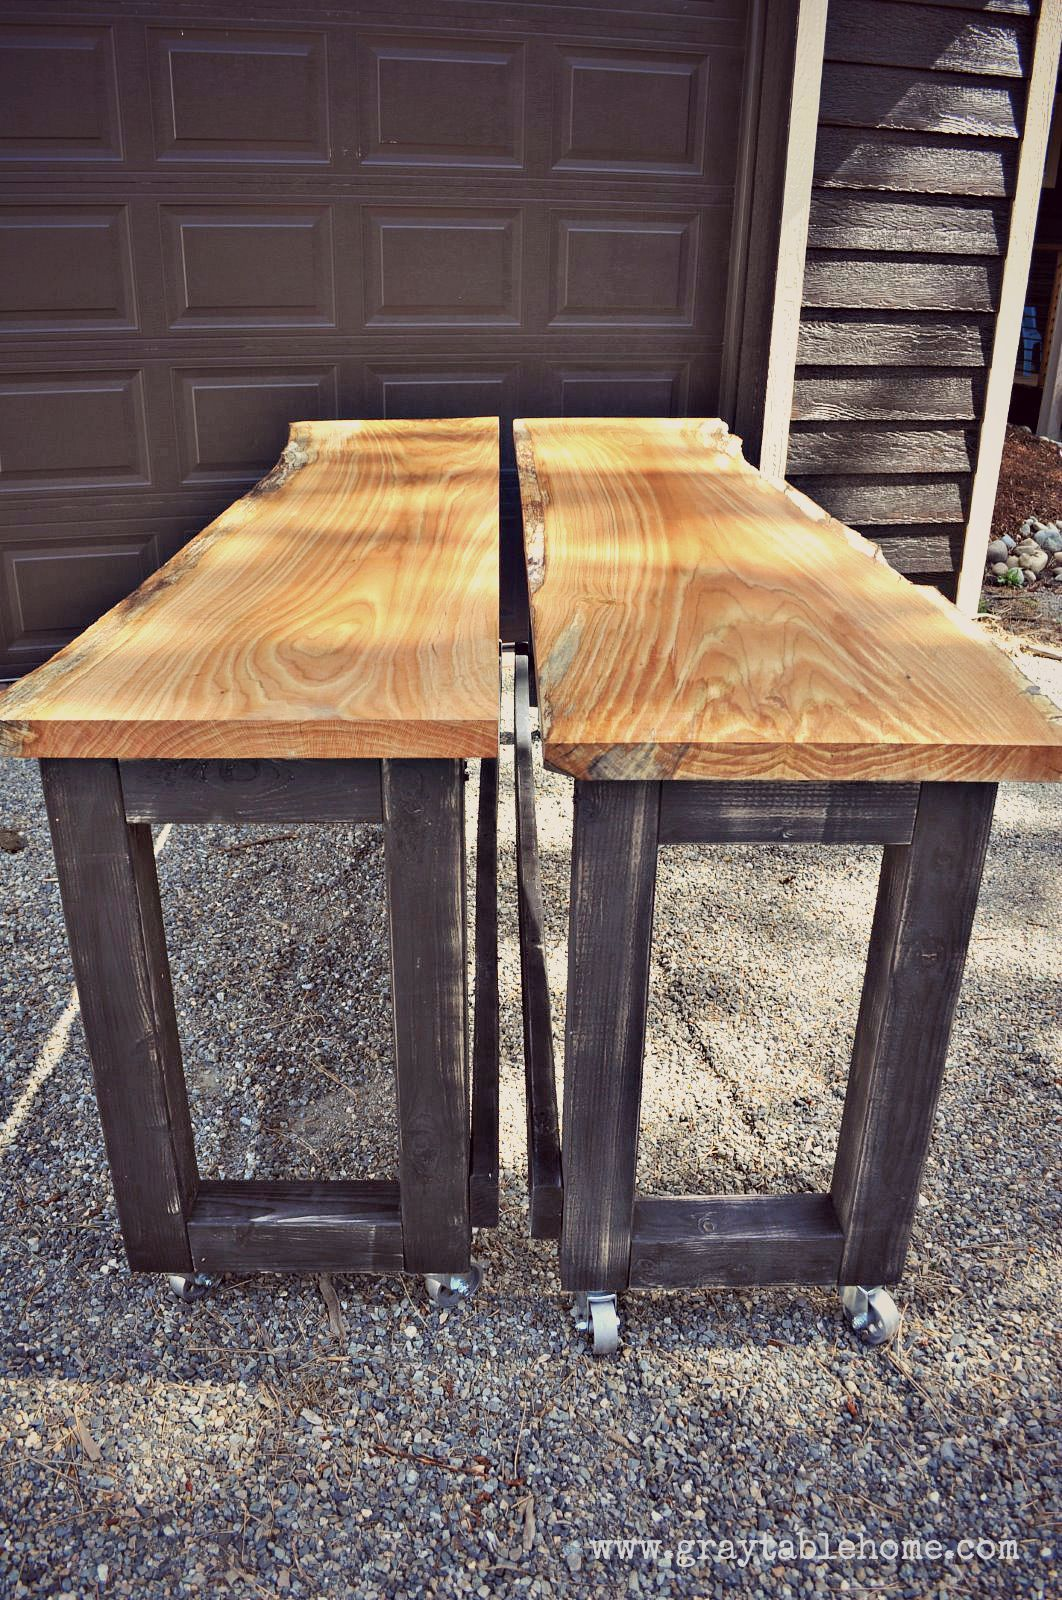 Diy Live Edge Oak Pub Tables On Wheels So That They Can Be Positioned Into A Long Bar Or Back To Back Int Bar Table Diy Bar Table Behind Couch